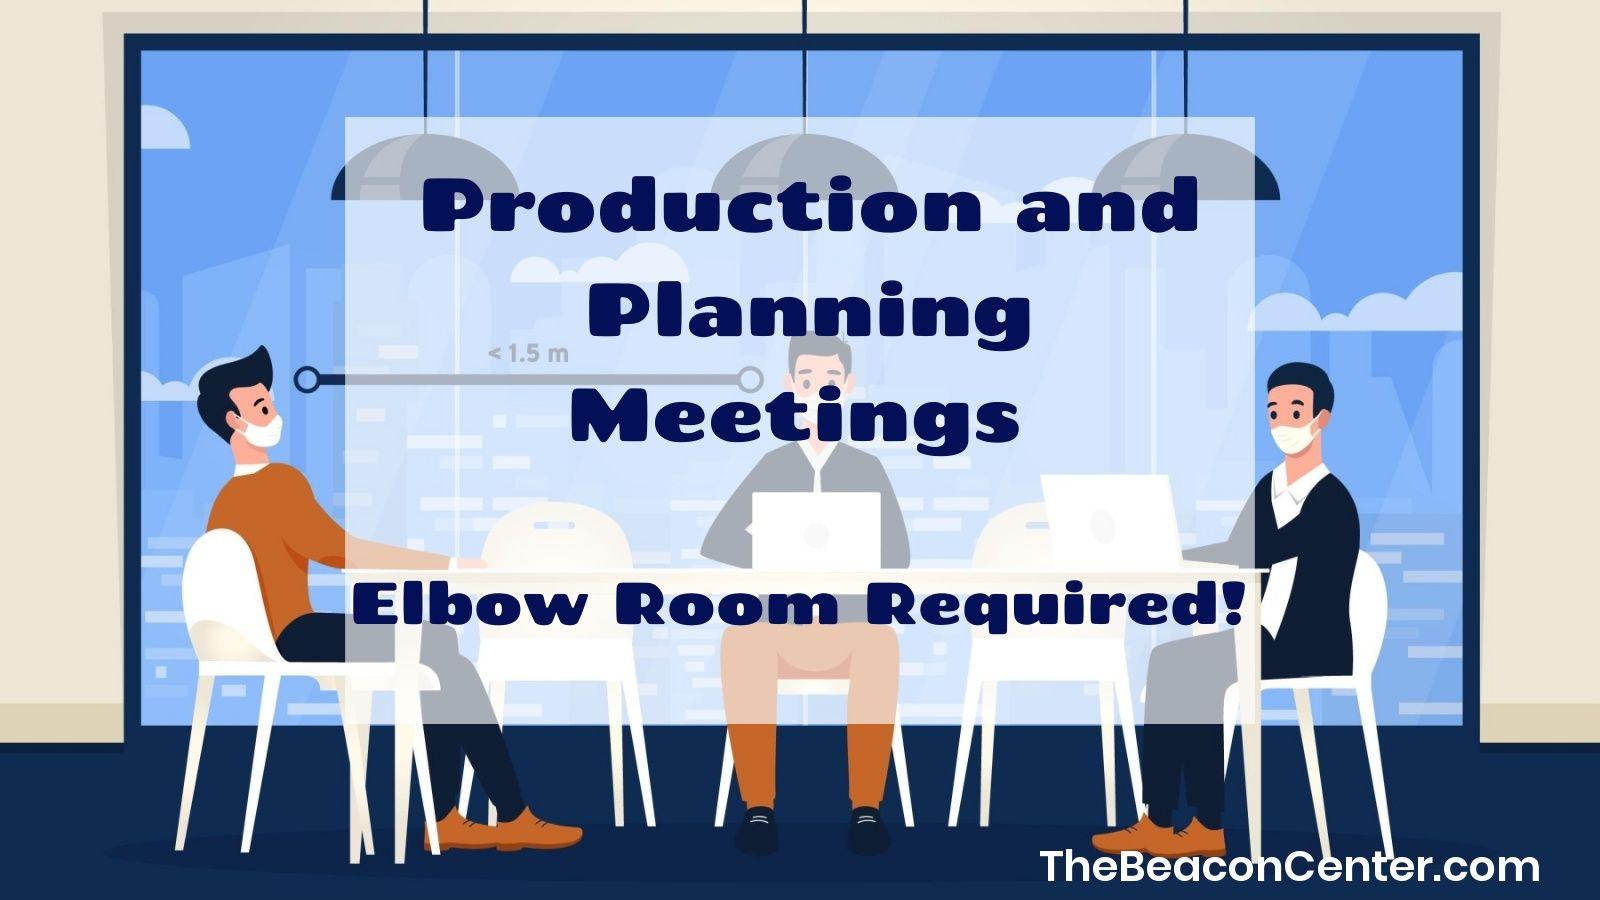 Production and Planning Meetings Photo